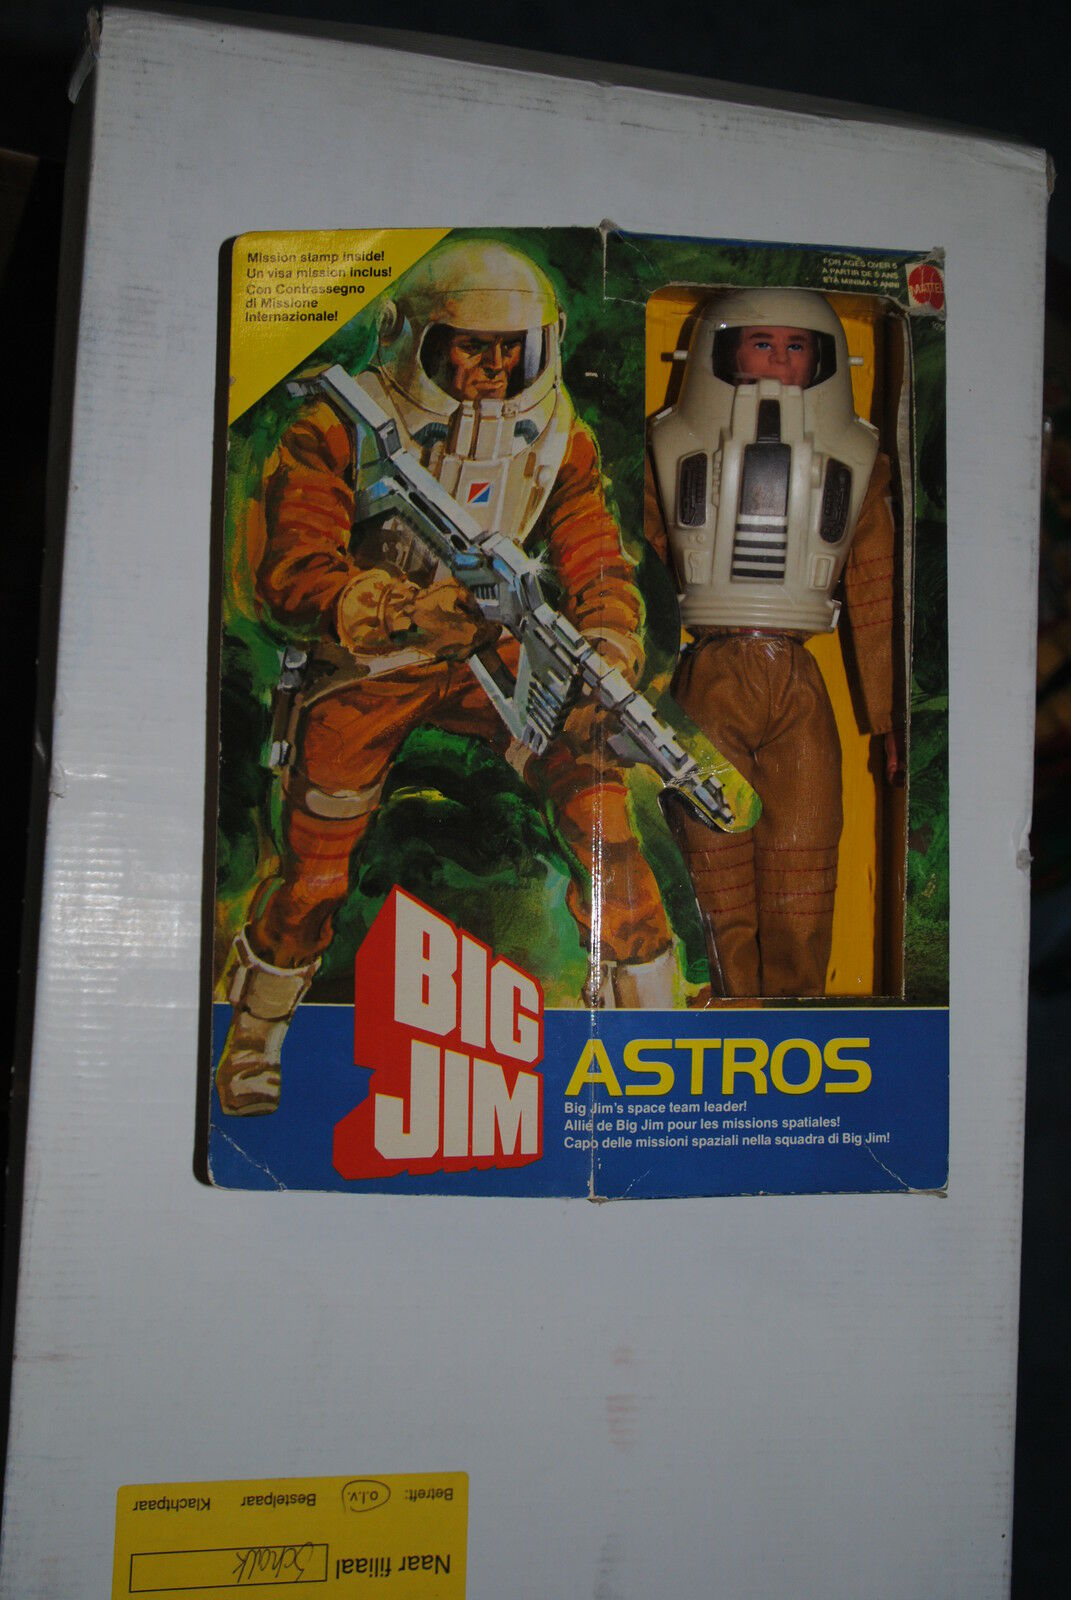 BIG JIM MATTEL  ASTROS      NEVER REMOVED FROM THE BOX